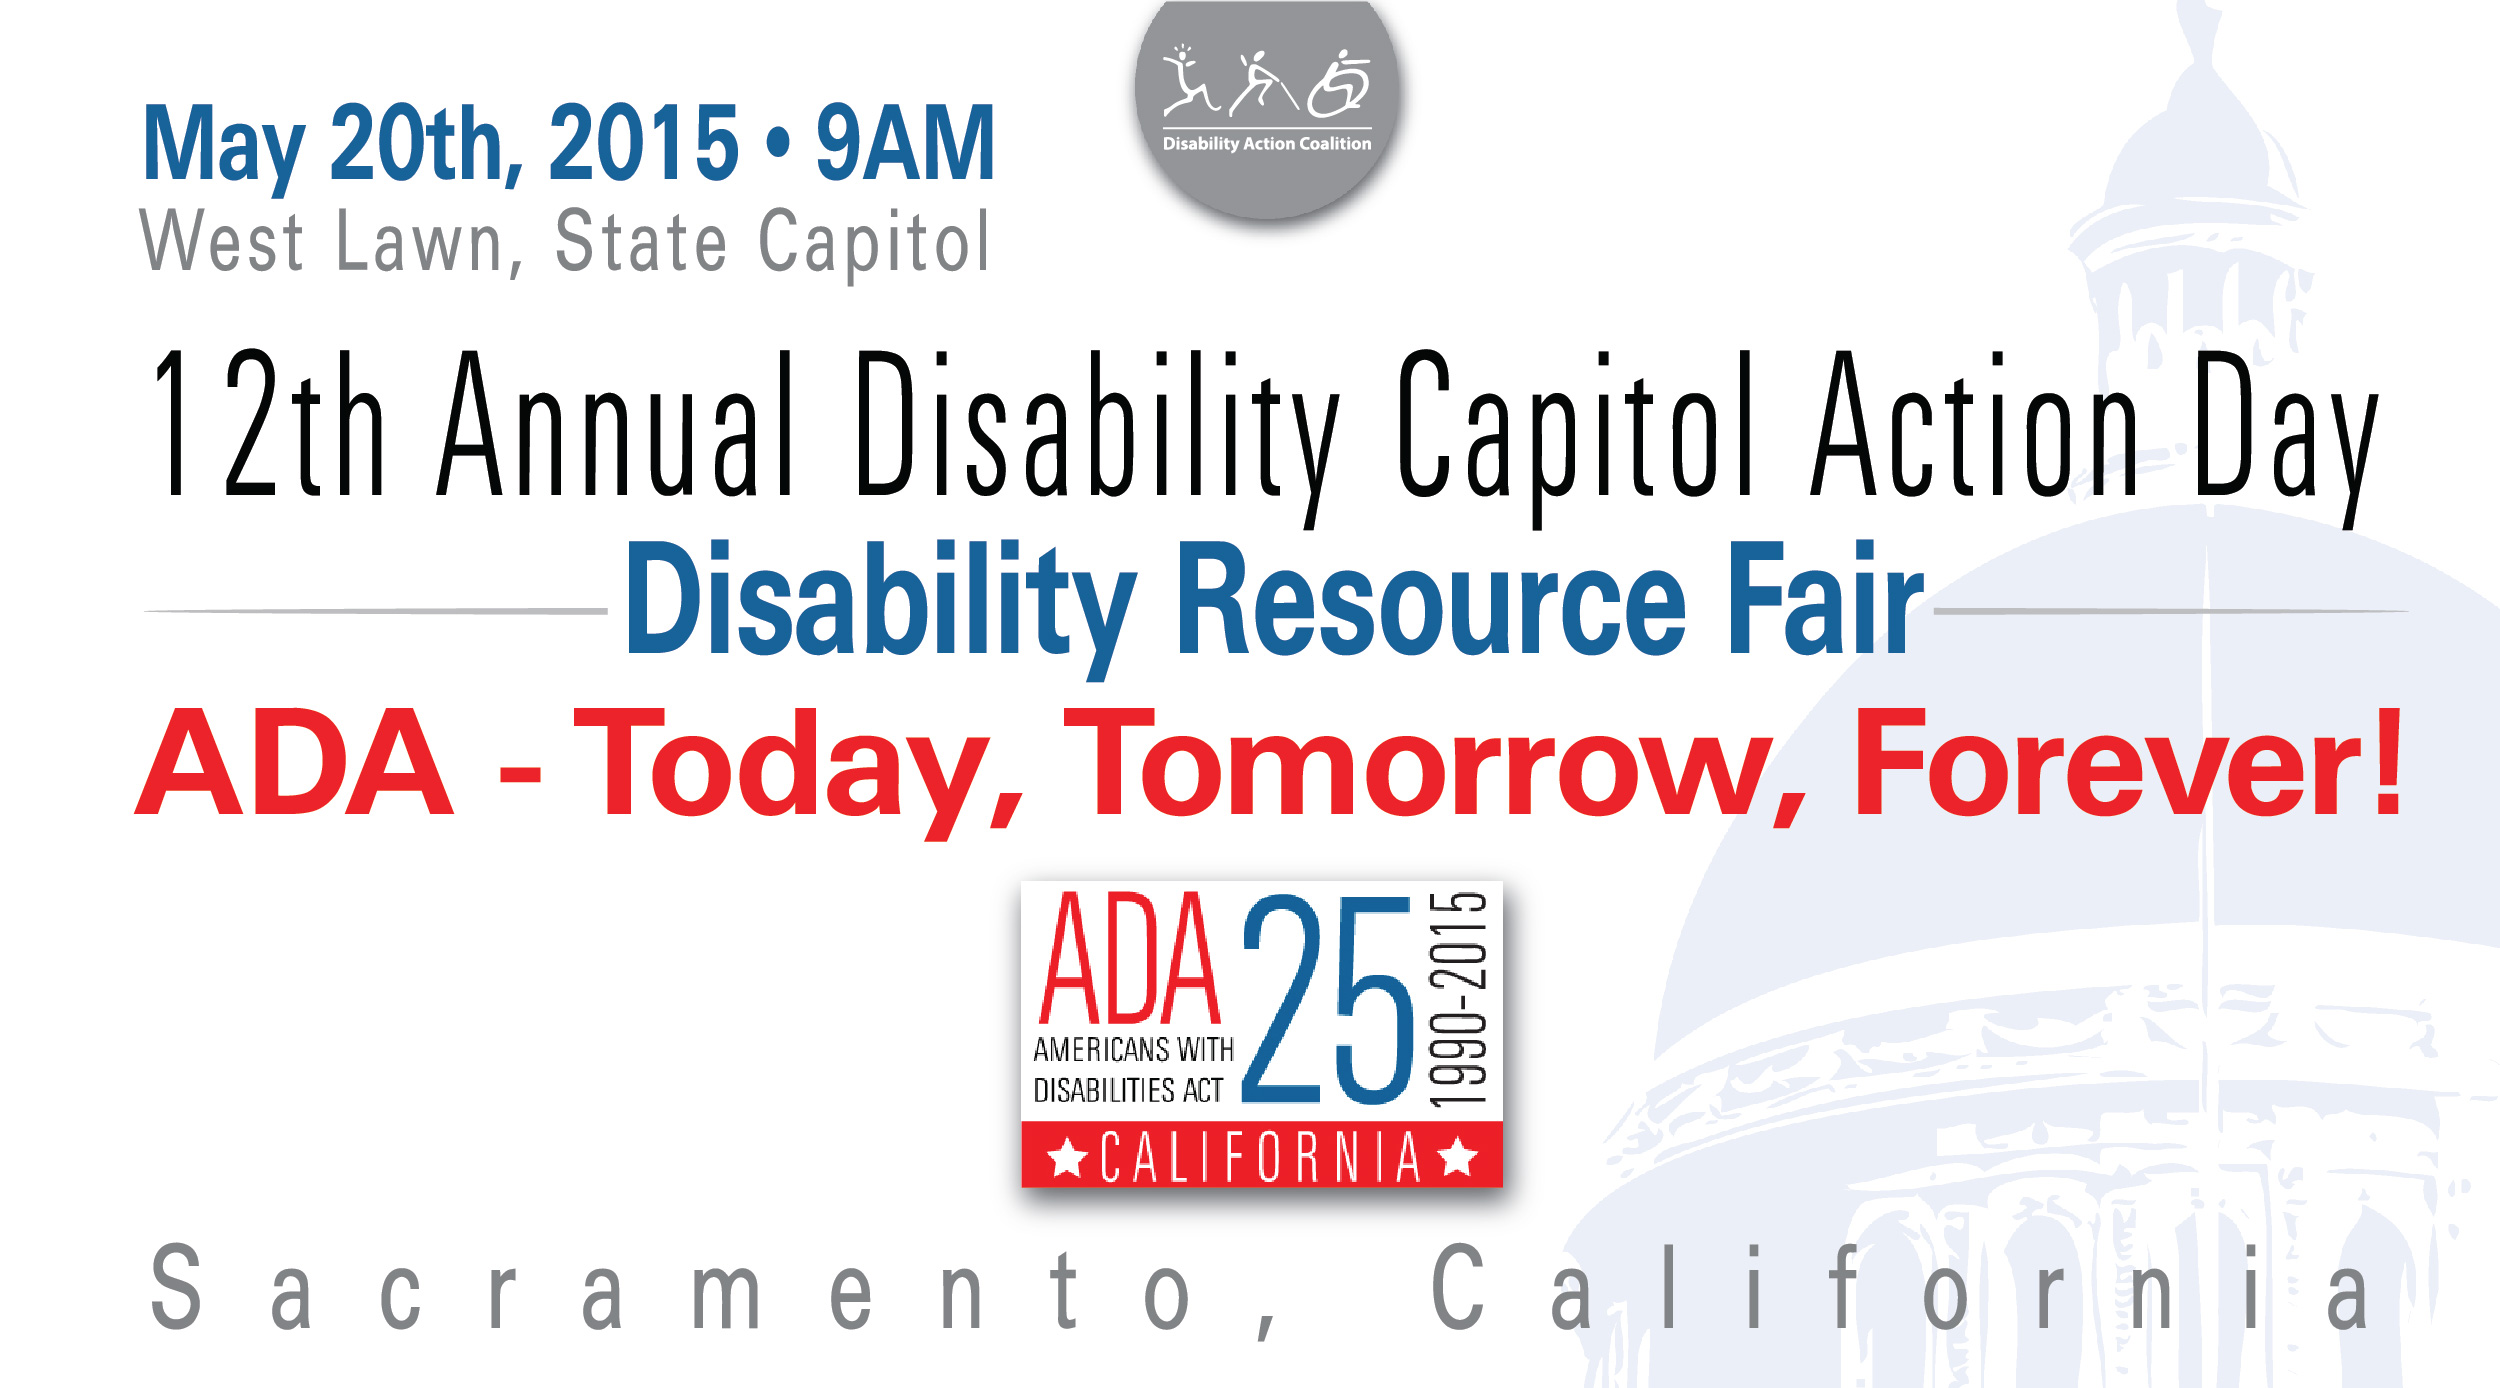 Image of DCAD 2014 with marchers as far as the eye can see. Image reads Wednesday May 20th, 2015. ADA - Today, Tomorrow, Forever! 12th Annual Disability Capitol Action Day, State Capitol Sacramento California.